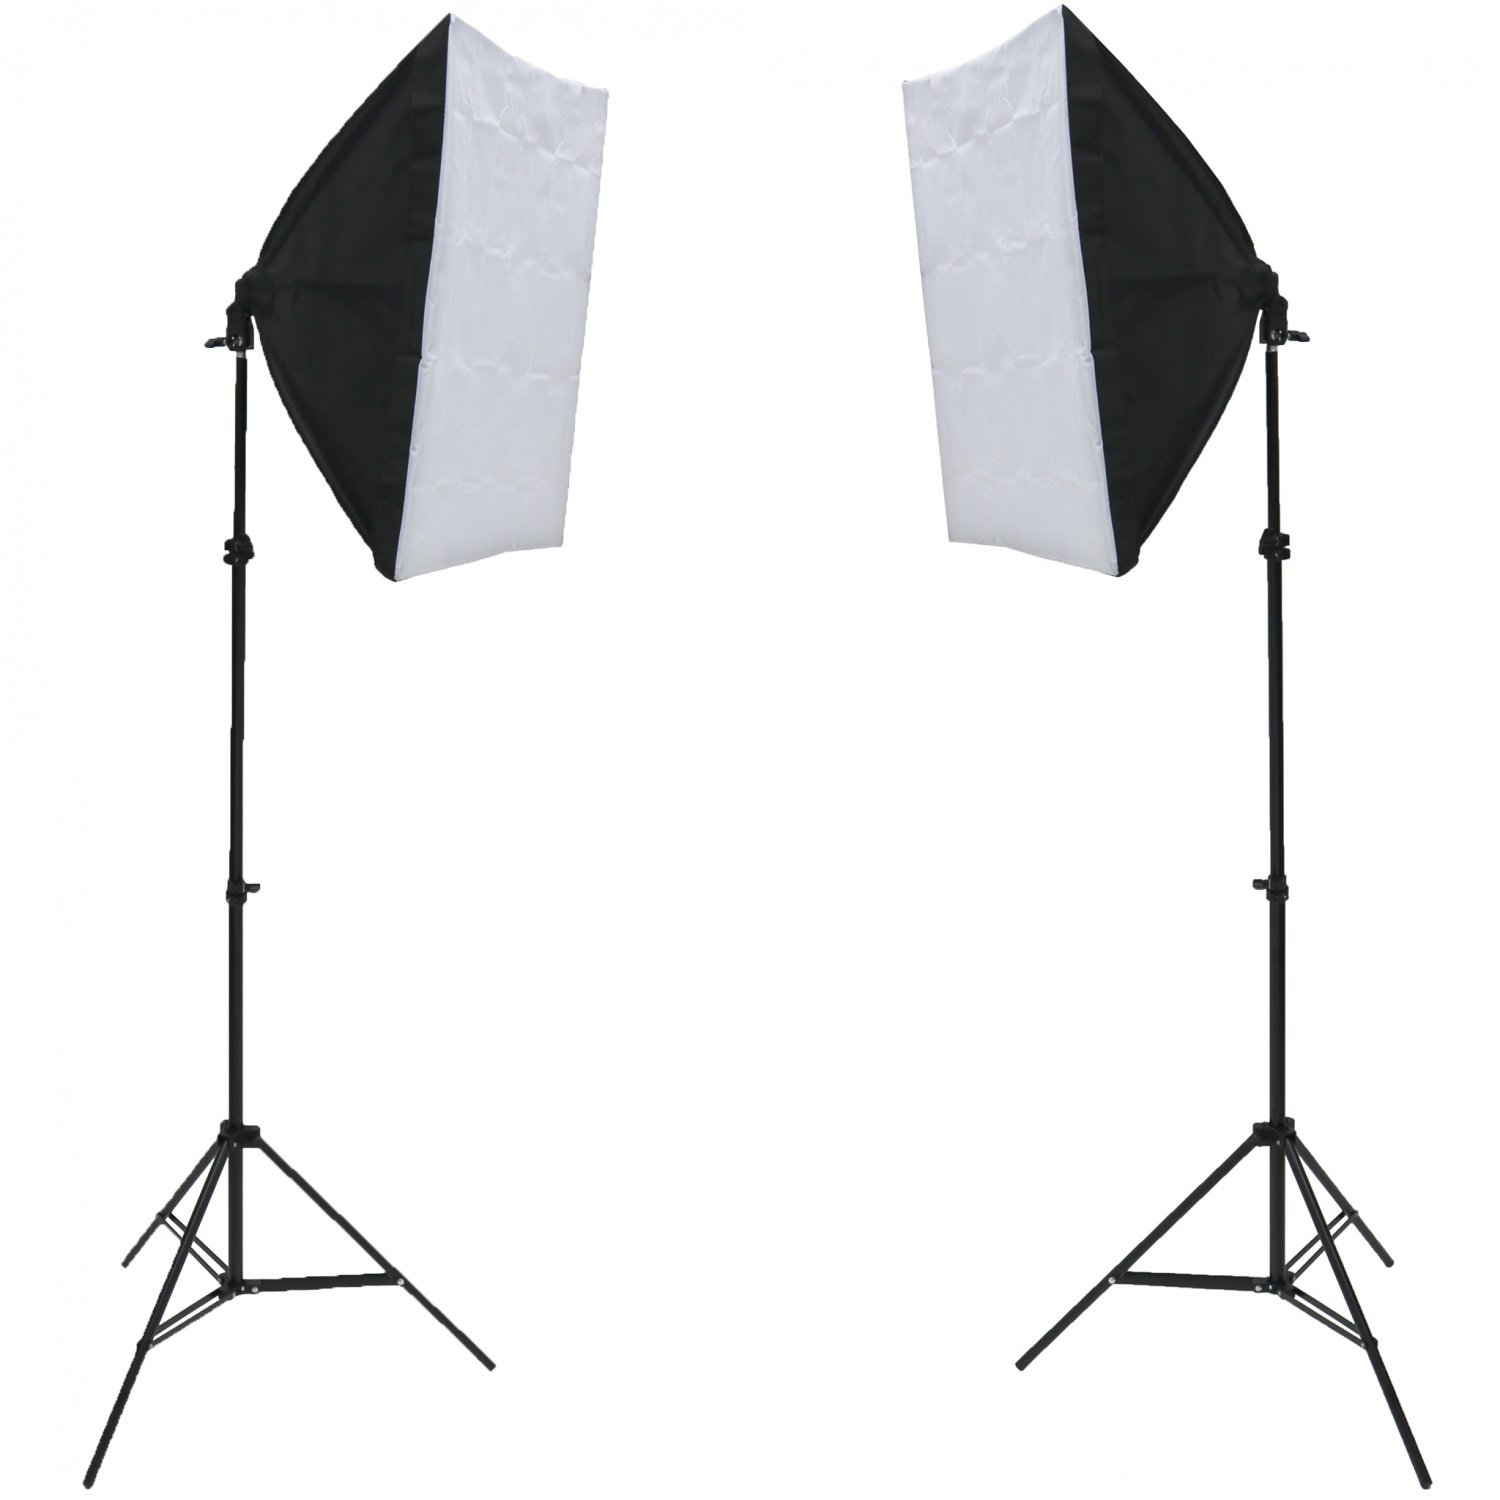 150W Studio Continuous Softbox Lighting Kit w/ Adjustable Stand